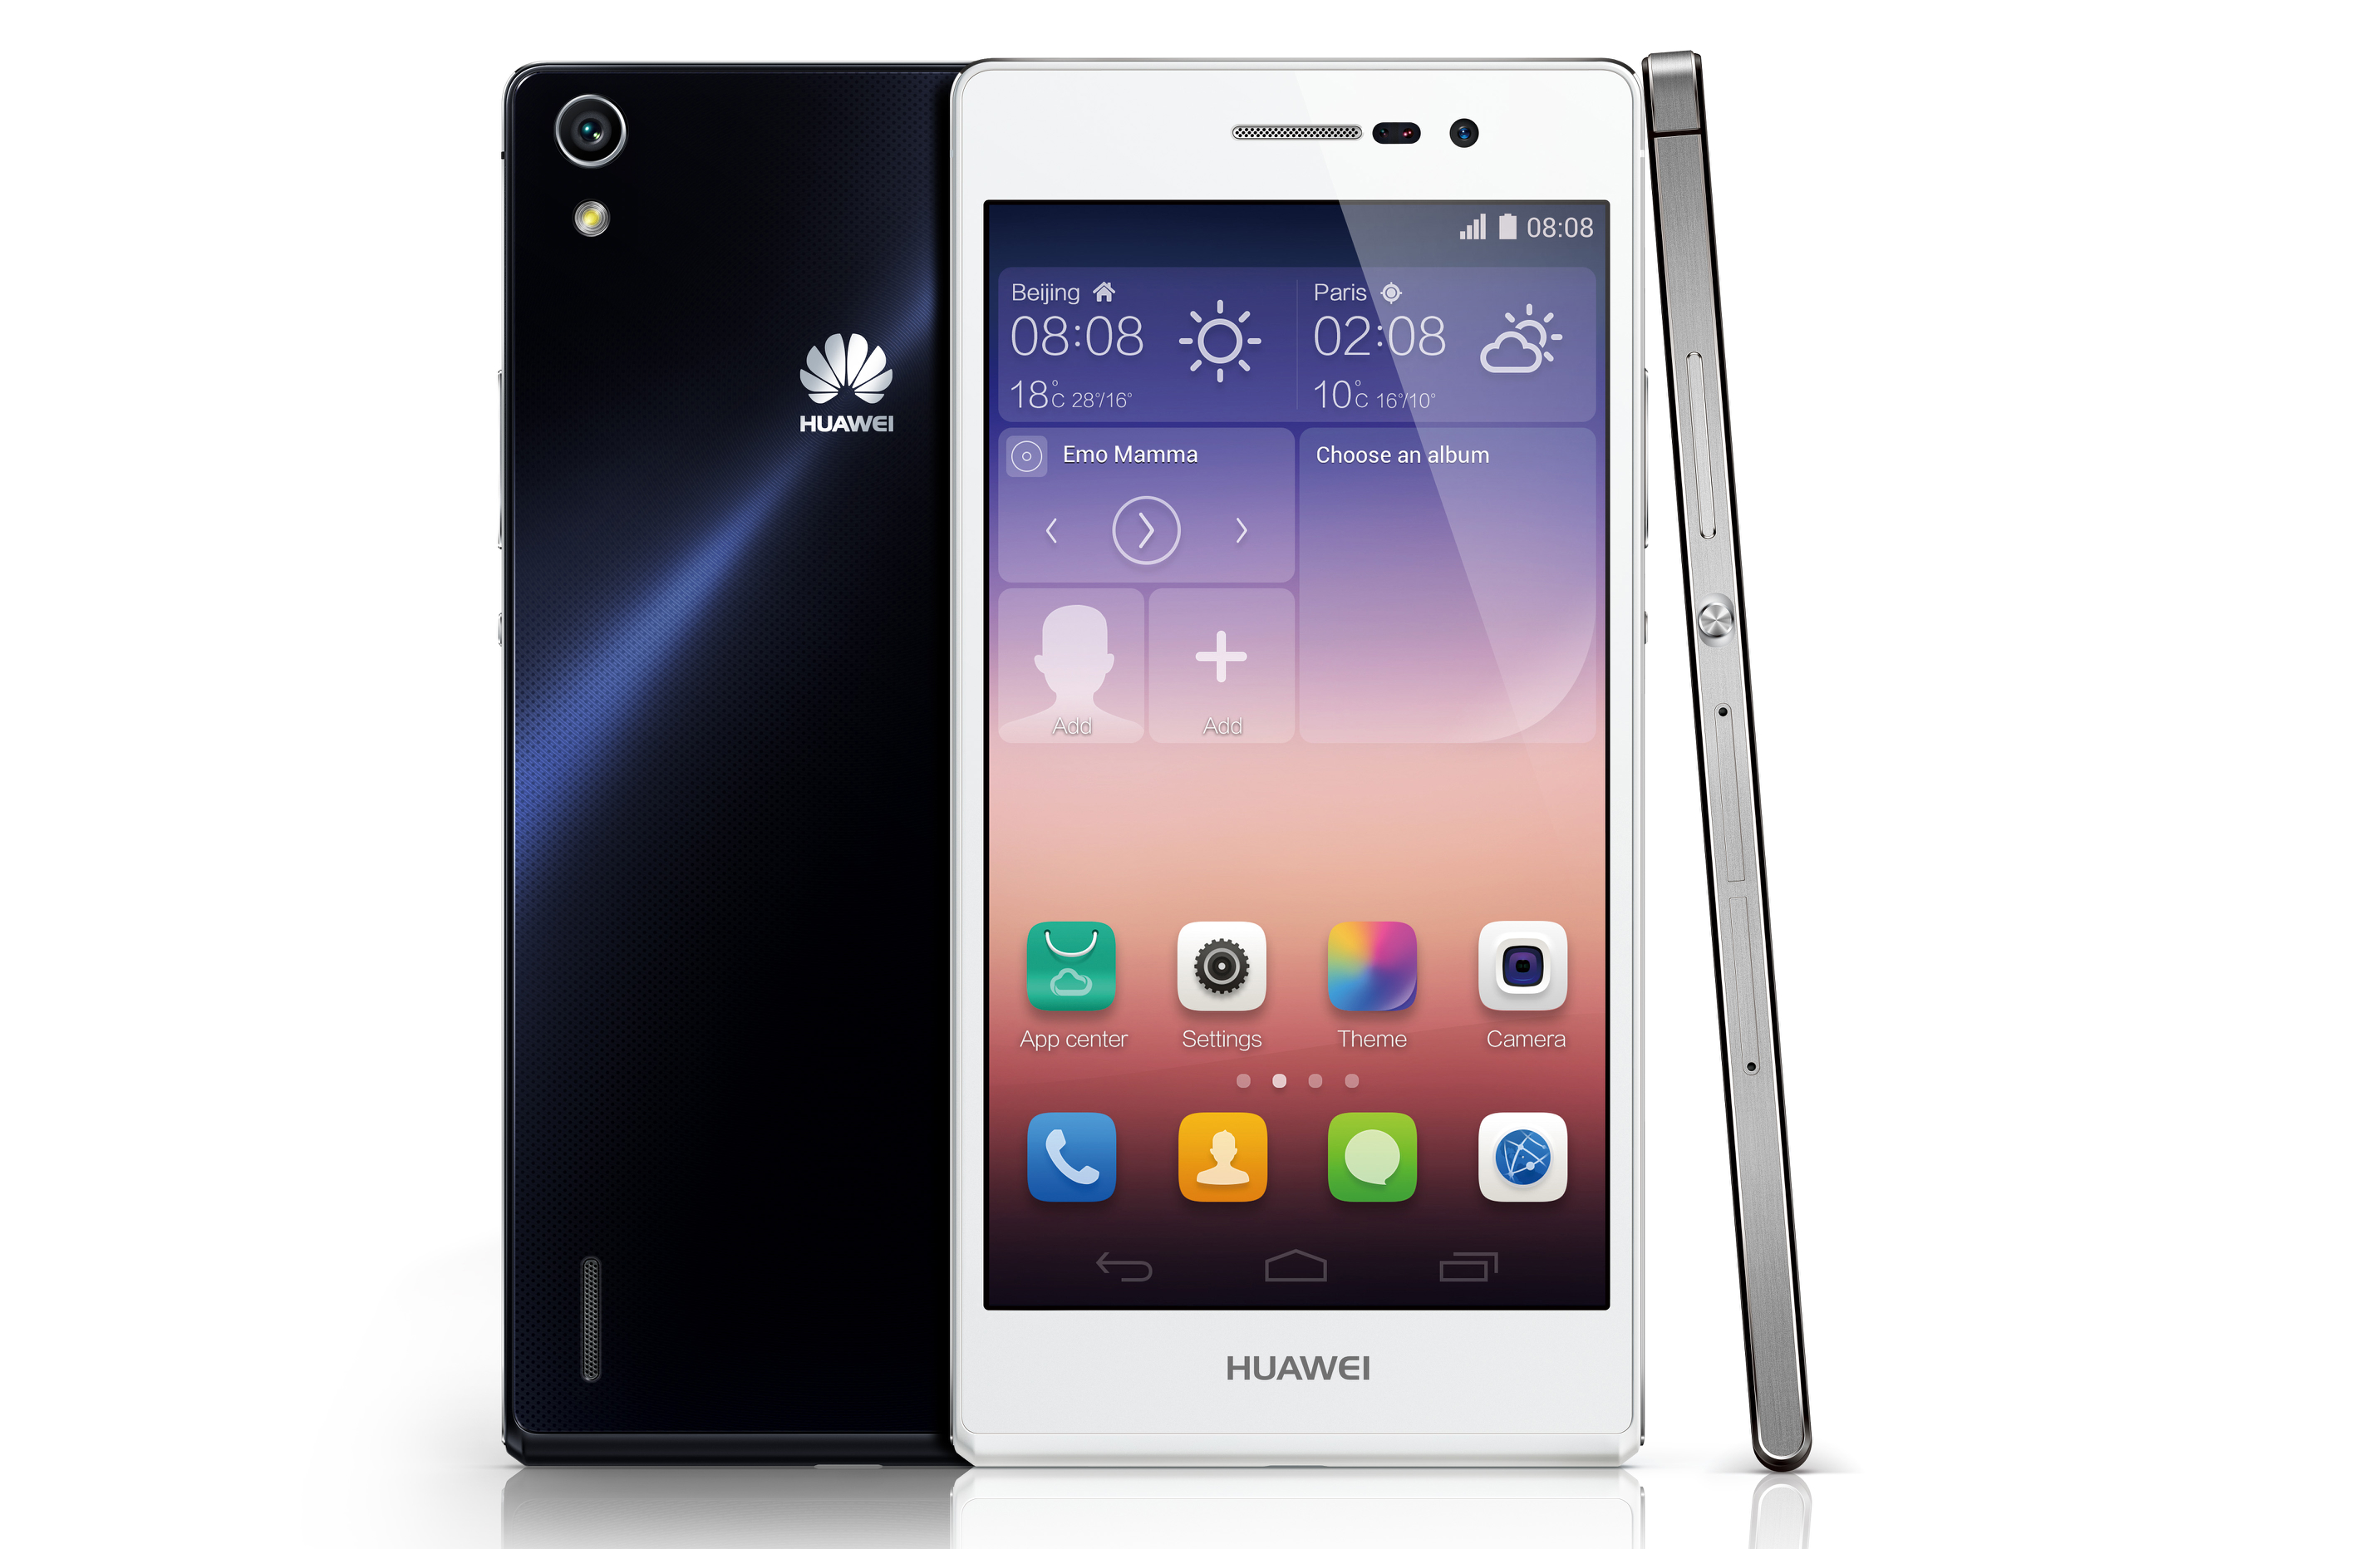 Camera Android Phones With Front Camera huawei launches ultra slim ascend p7 with 8mp front camera digital photography review